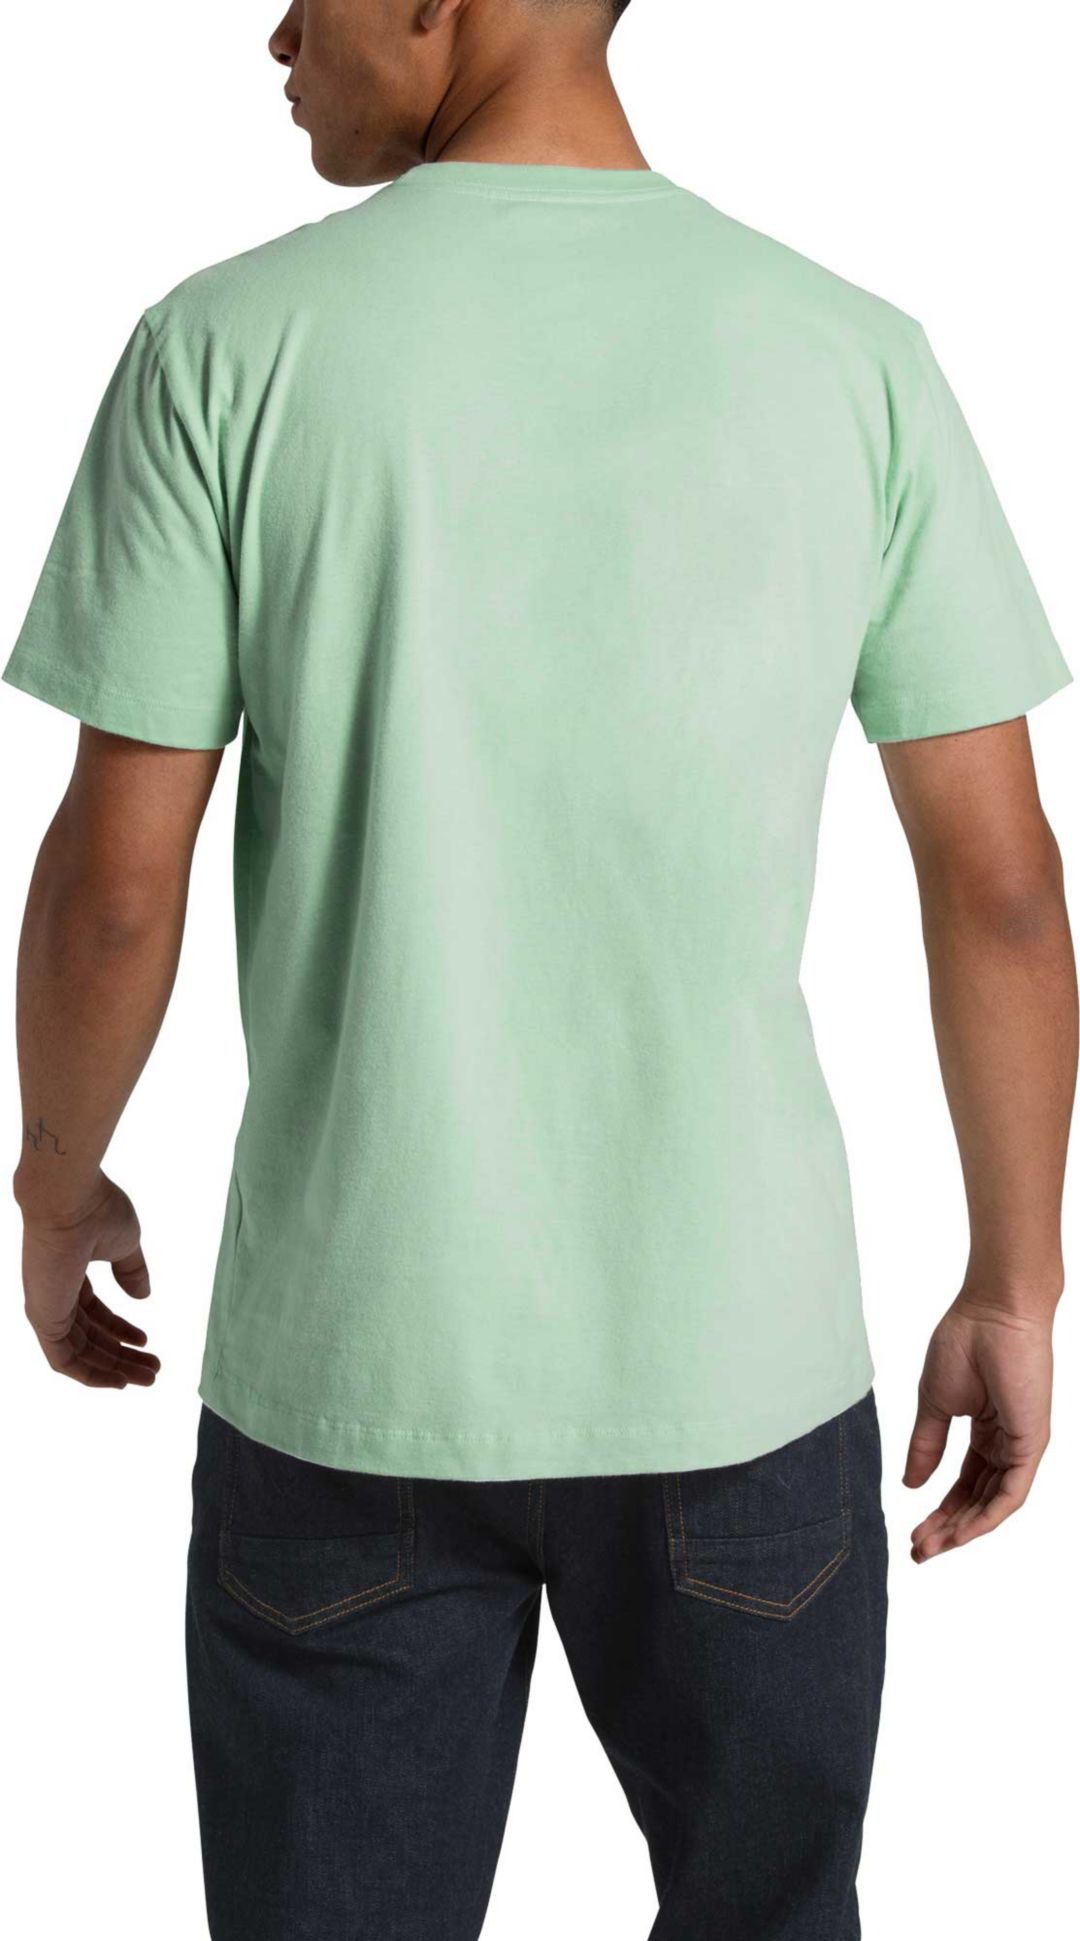 55e54edbe The North Face Men's Short Sleeve From The Beginning T-Shirt